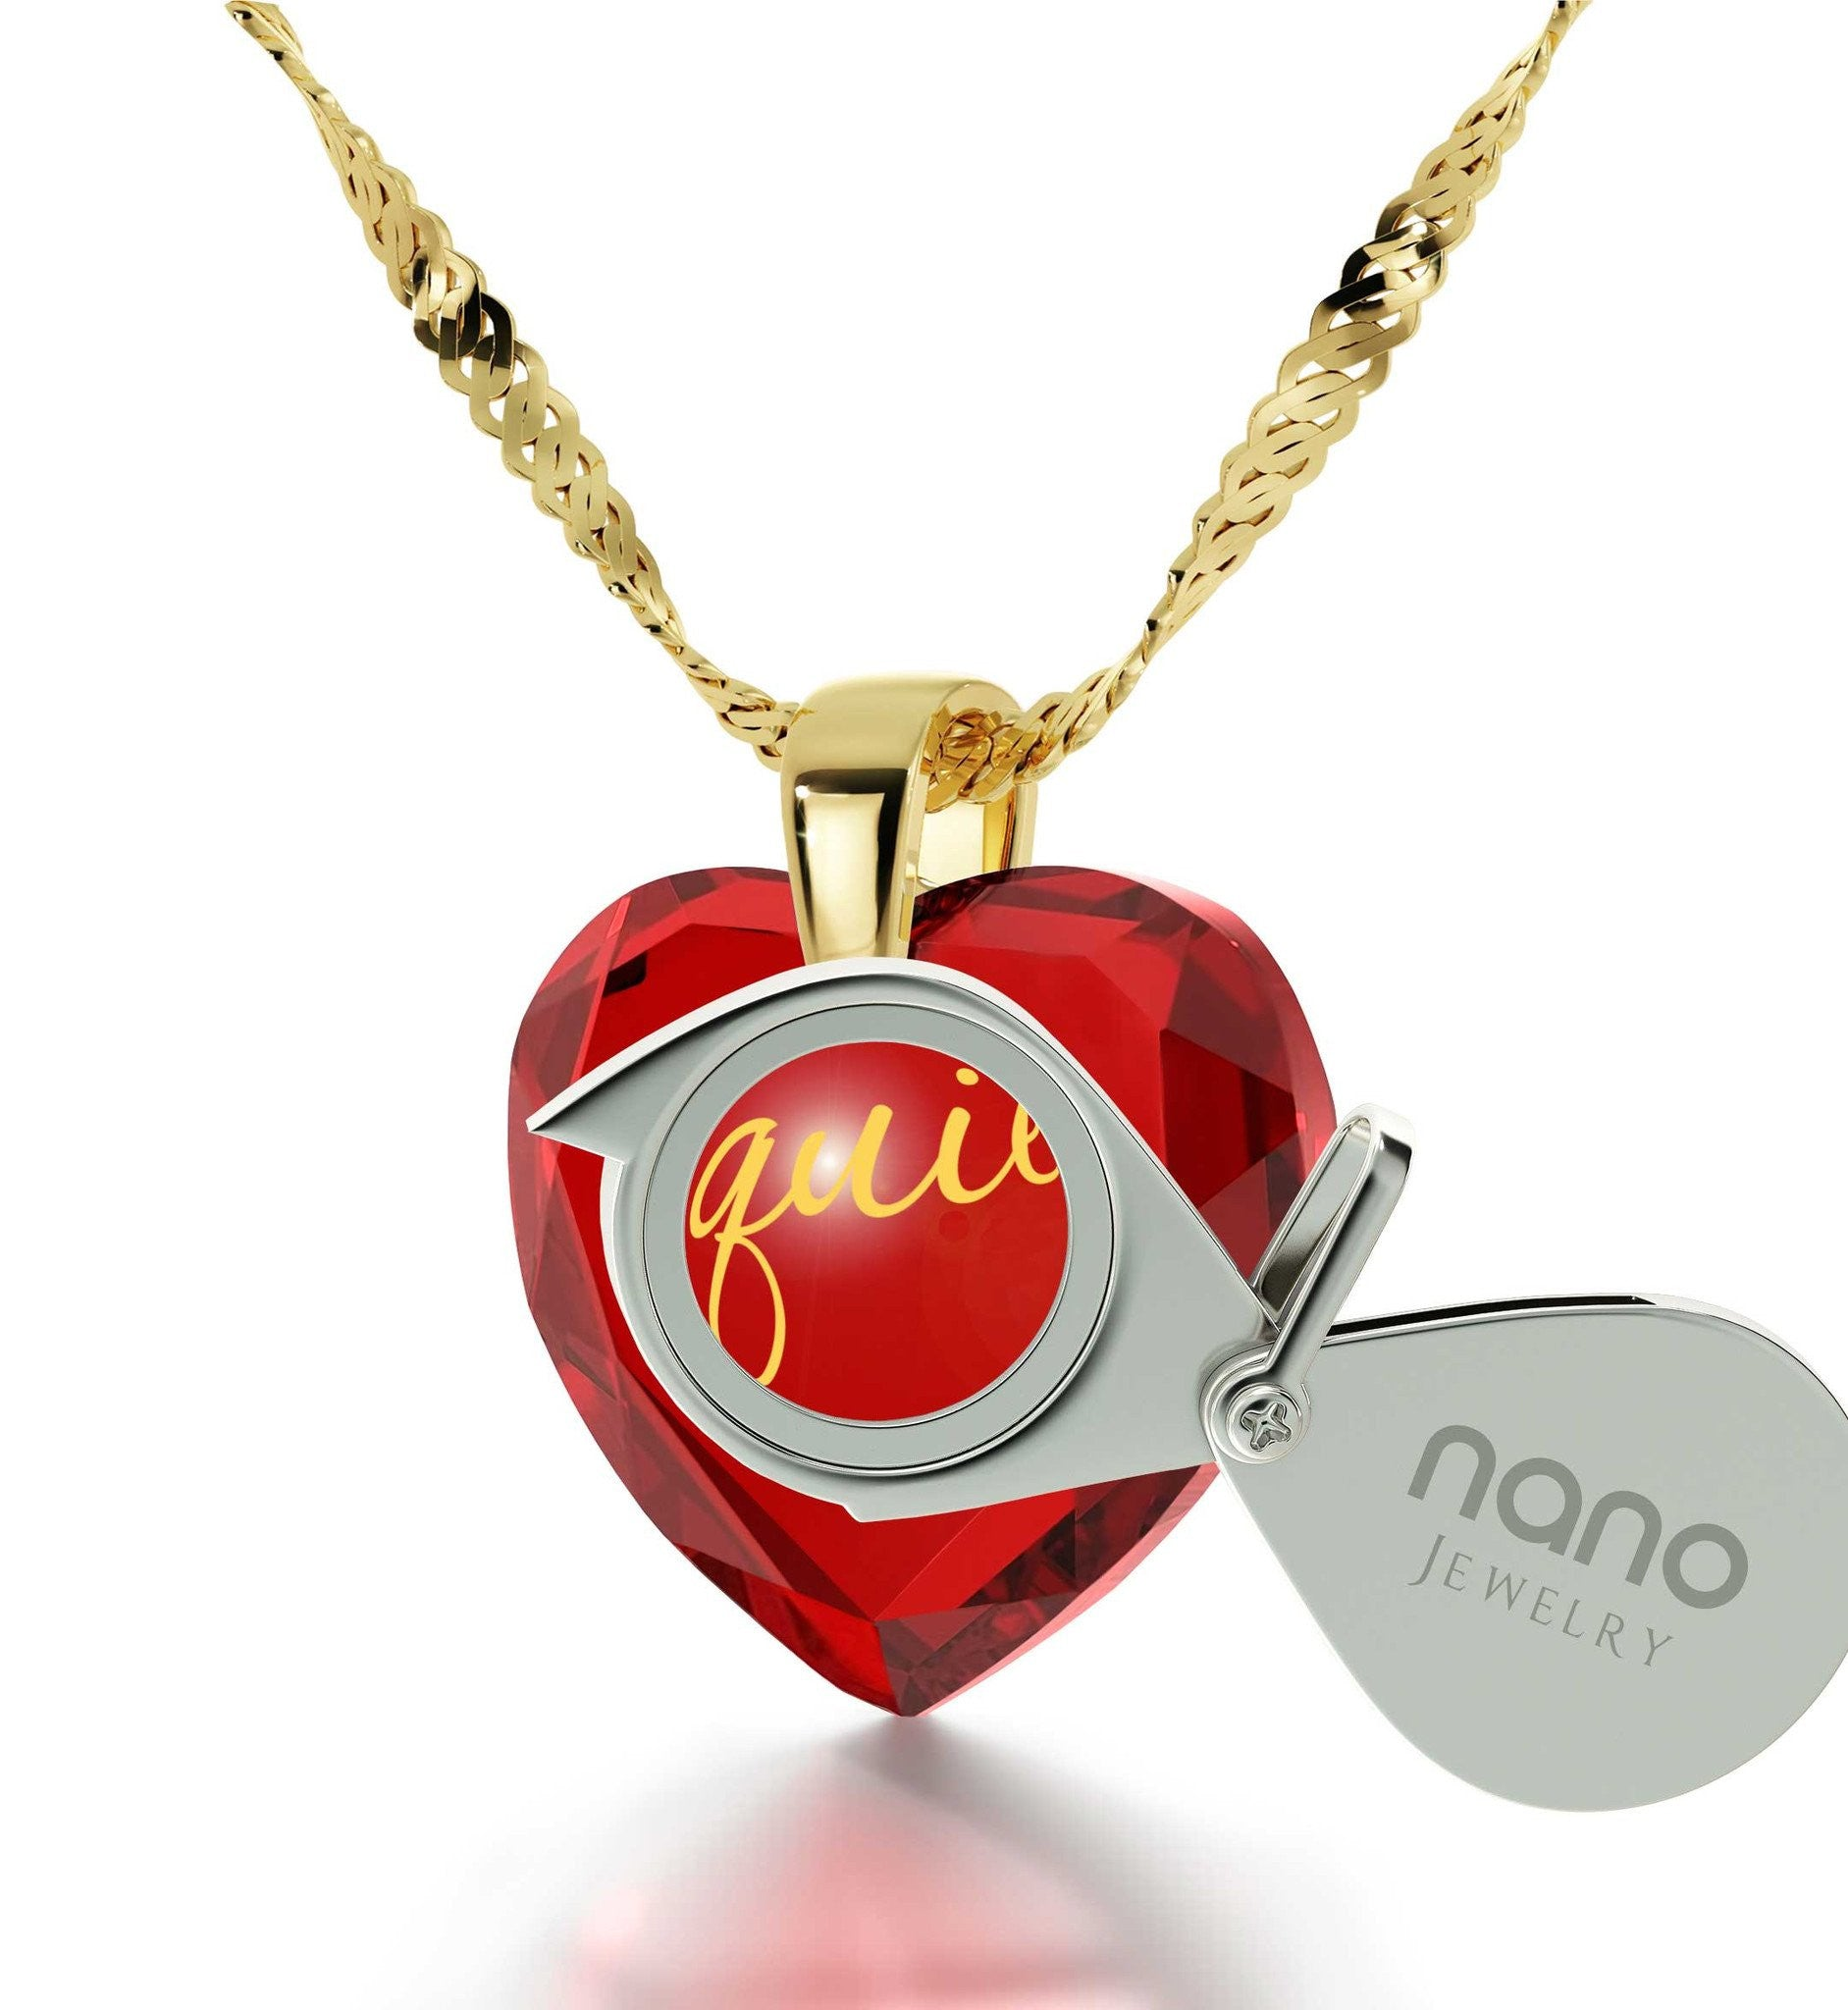 "Cute Necklaces for Her,""Te Quiero"", Gold Filled Chain, Unusual Birthday Gifts for Her, Nano Jewelry"